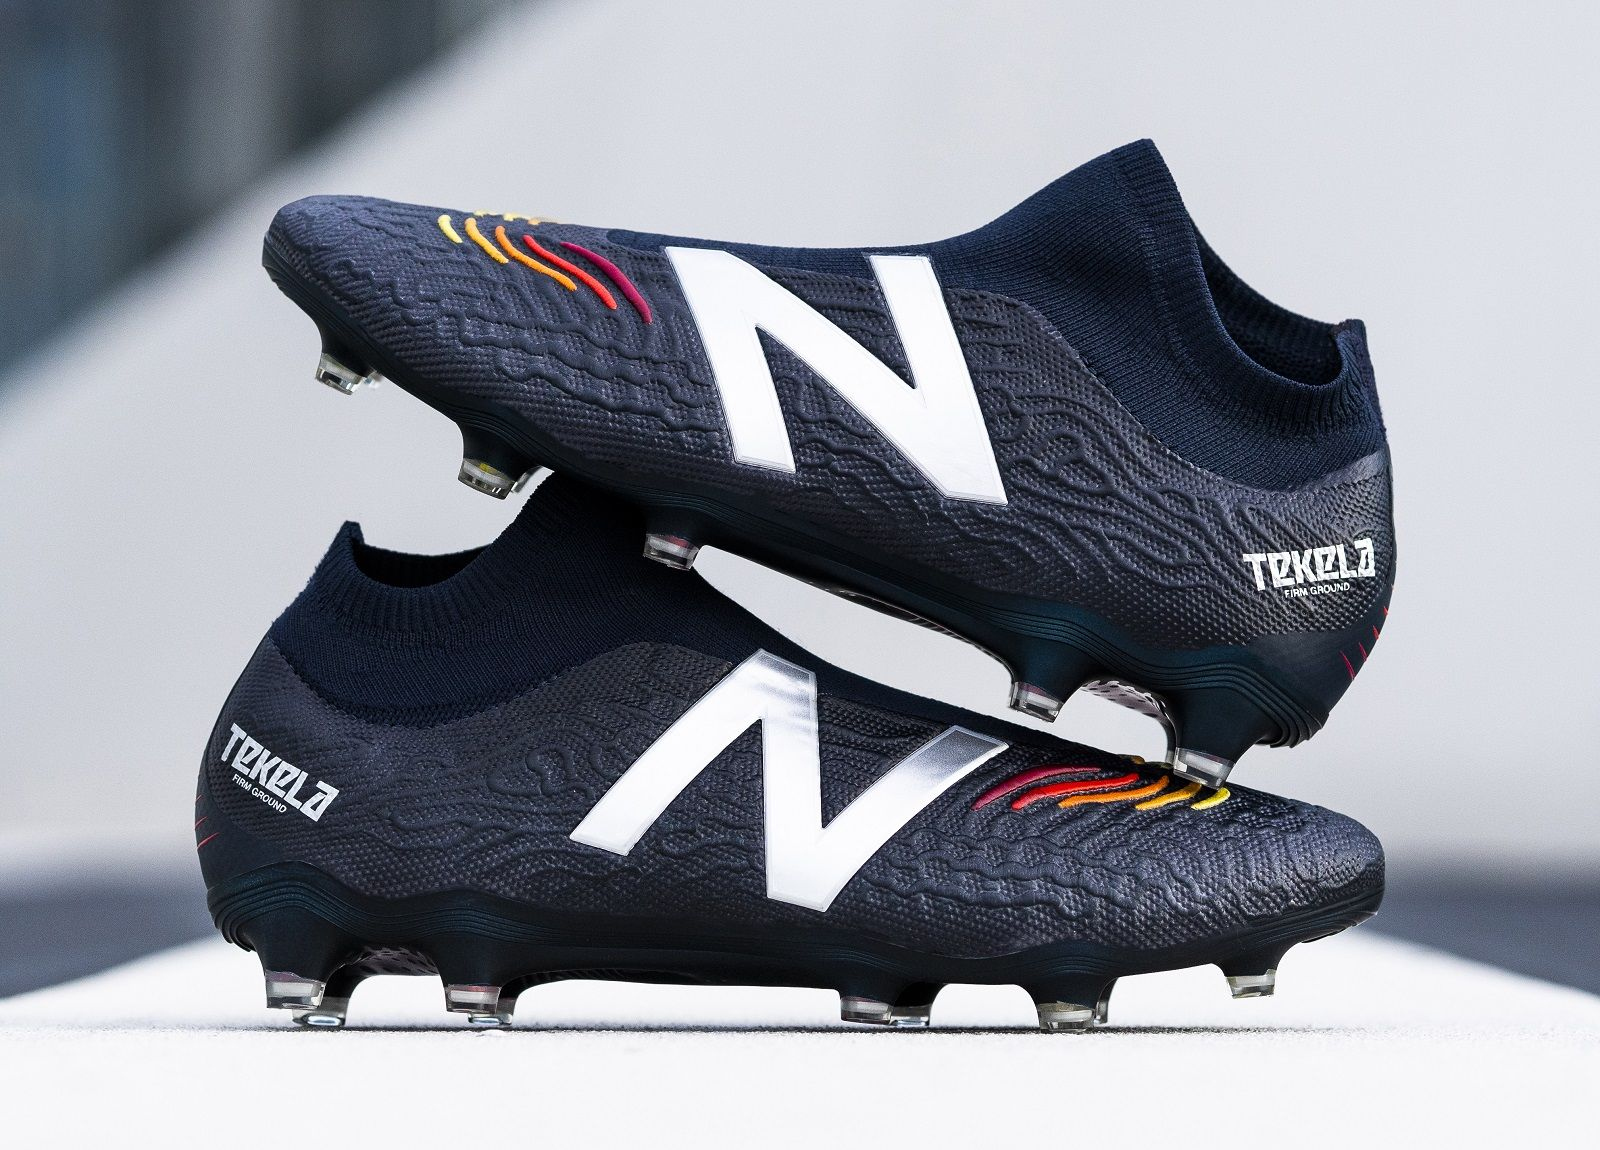 New Balance Tekela V3 Released 2020 In 2020 Football Boots Soccer Boots Soccer Shoes